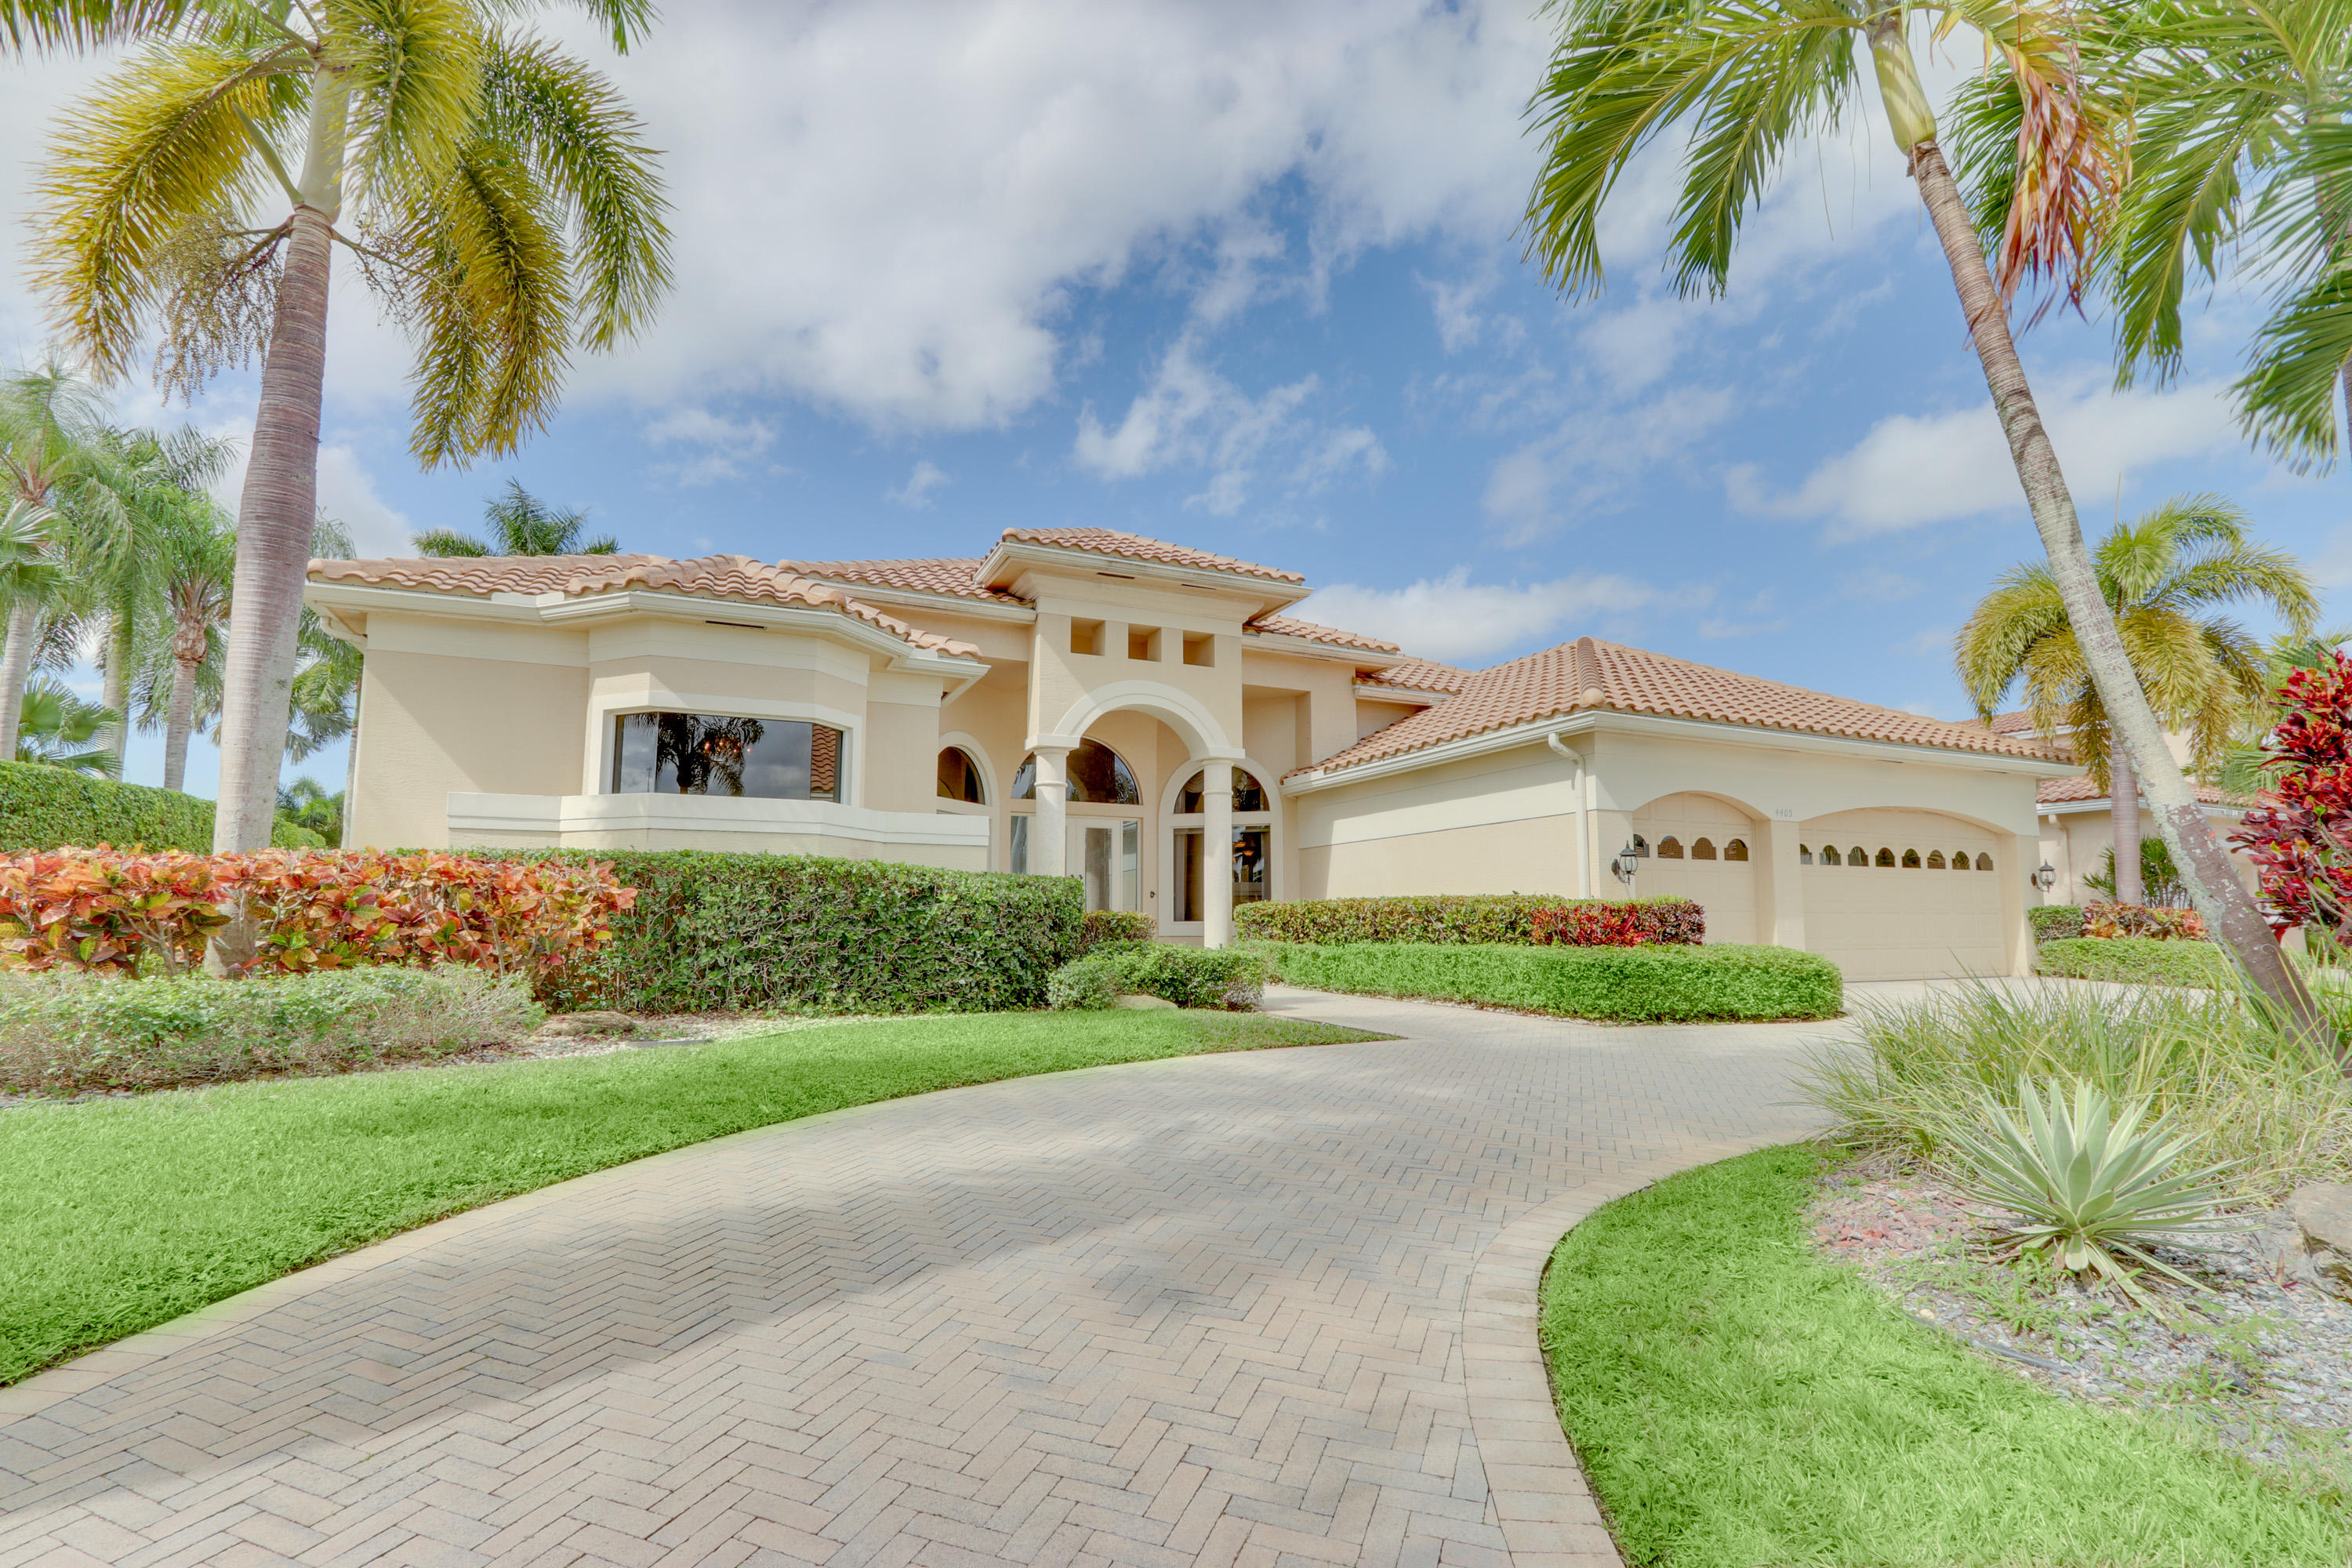 Home for sale in Wycliffe - James Estate Wellington Florida